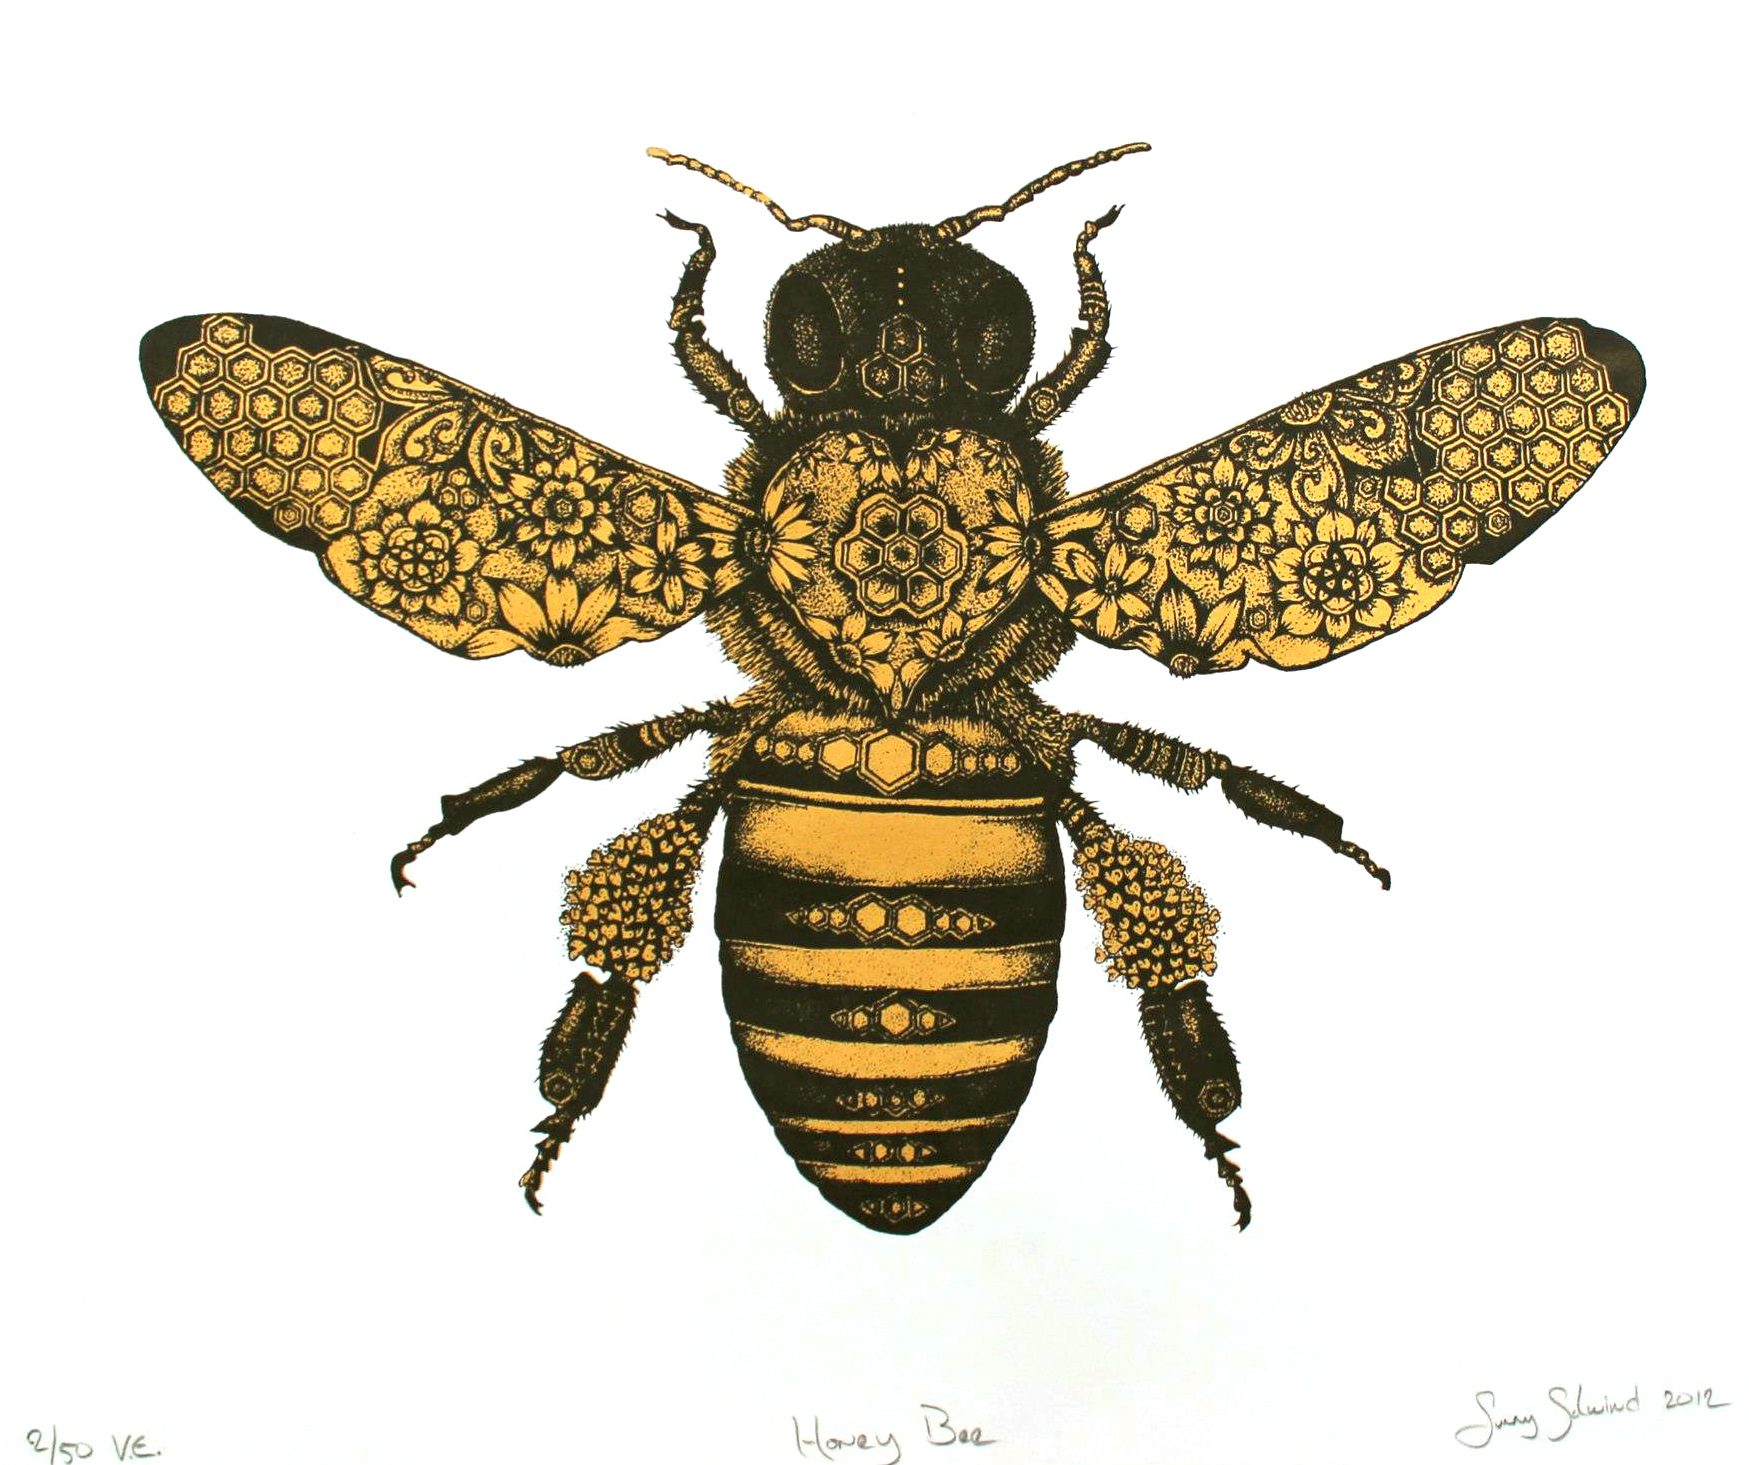 Bees clipart vintage Search bee honey Search Google